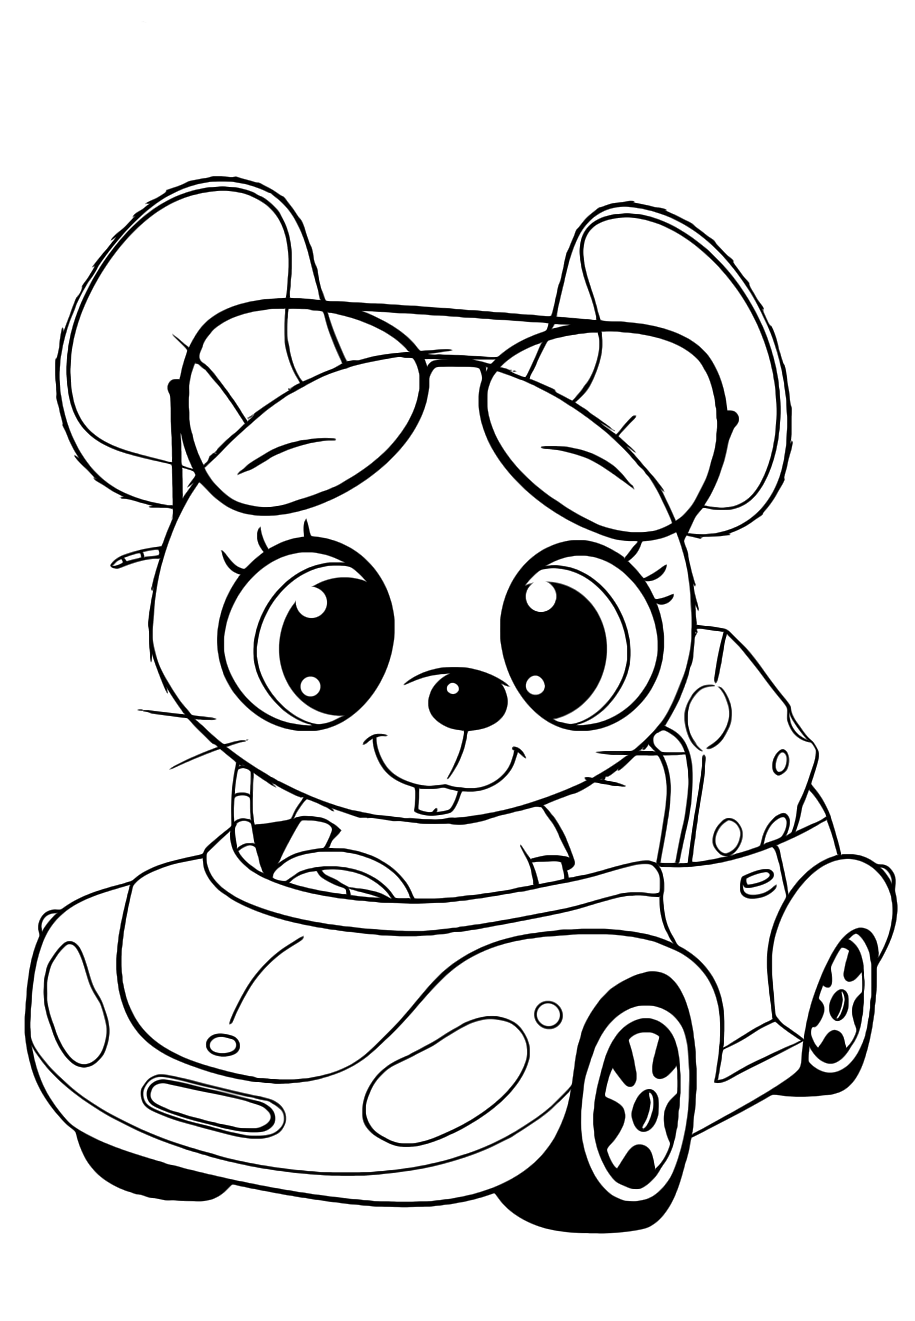 Cutie Mouse in the machine